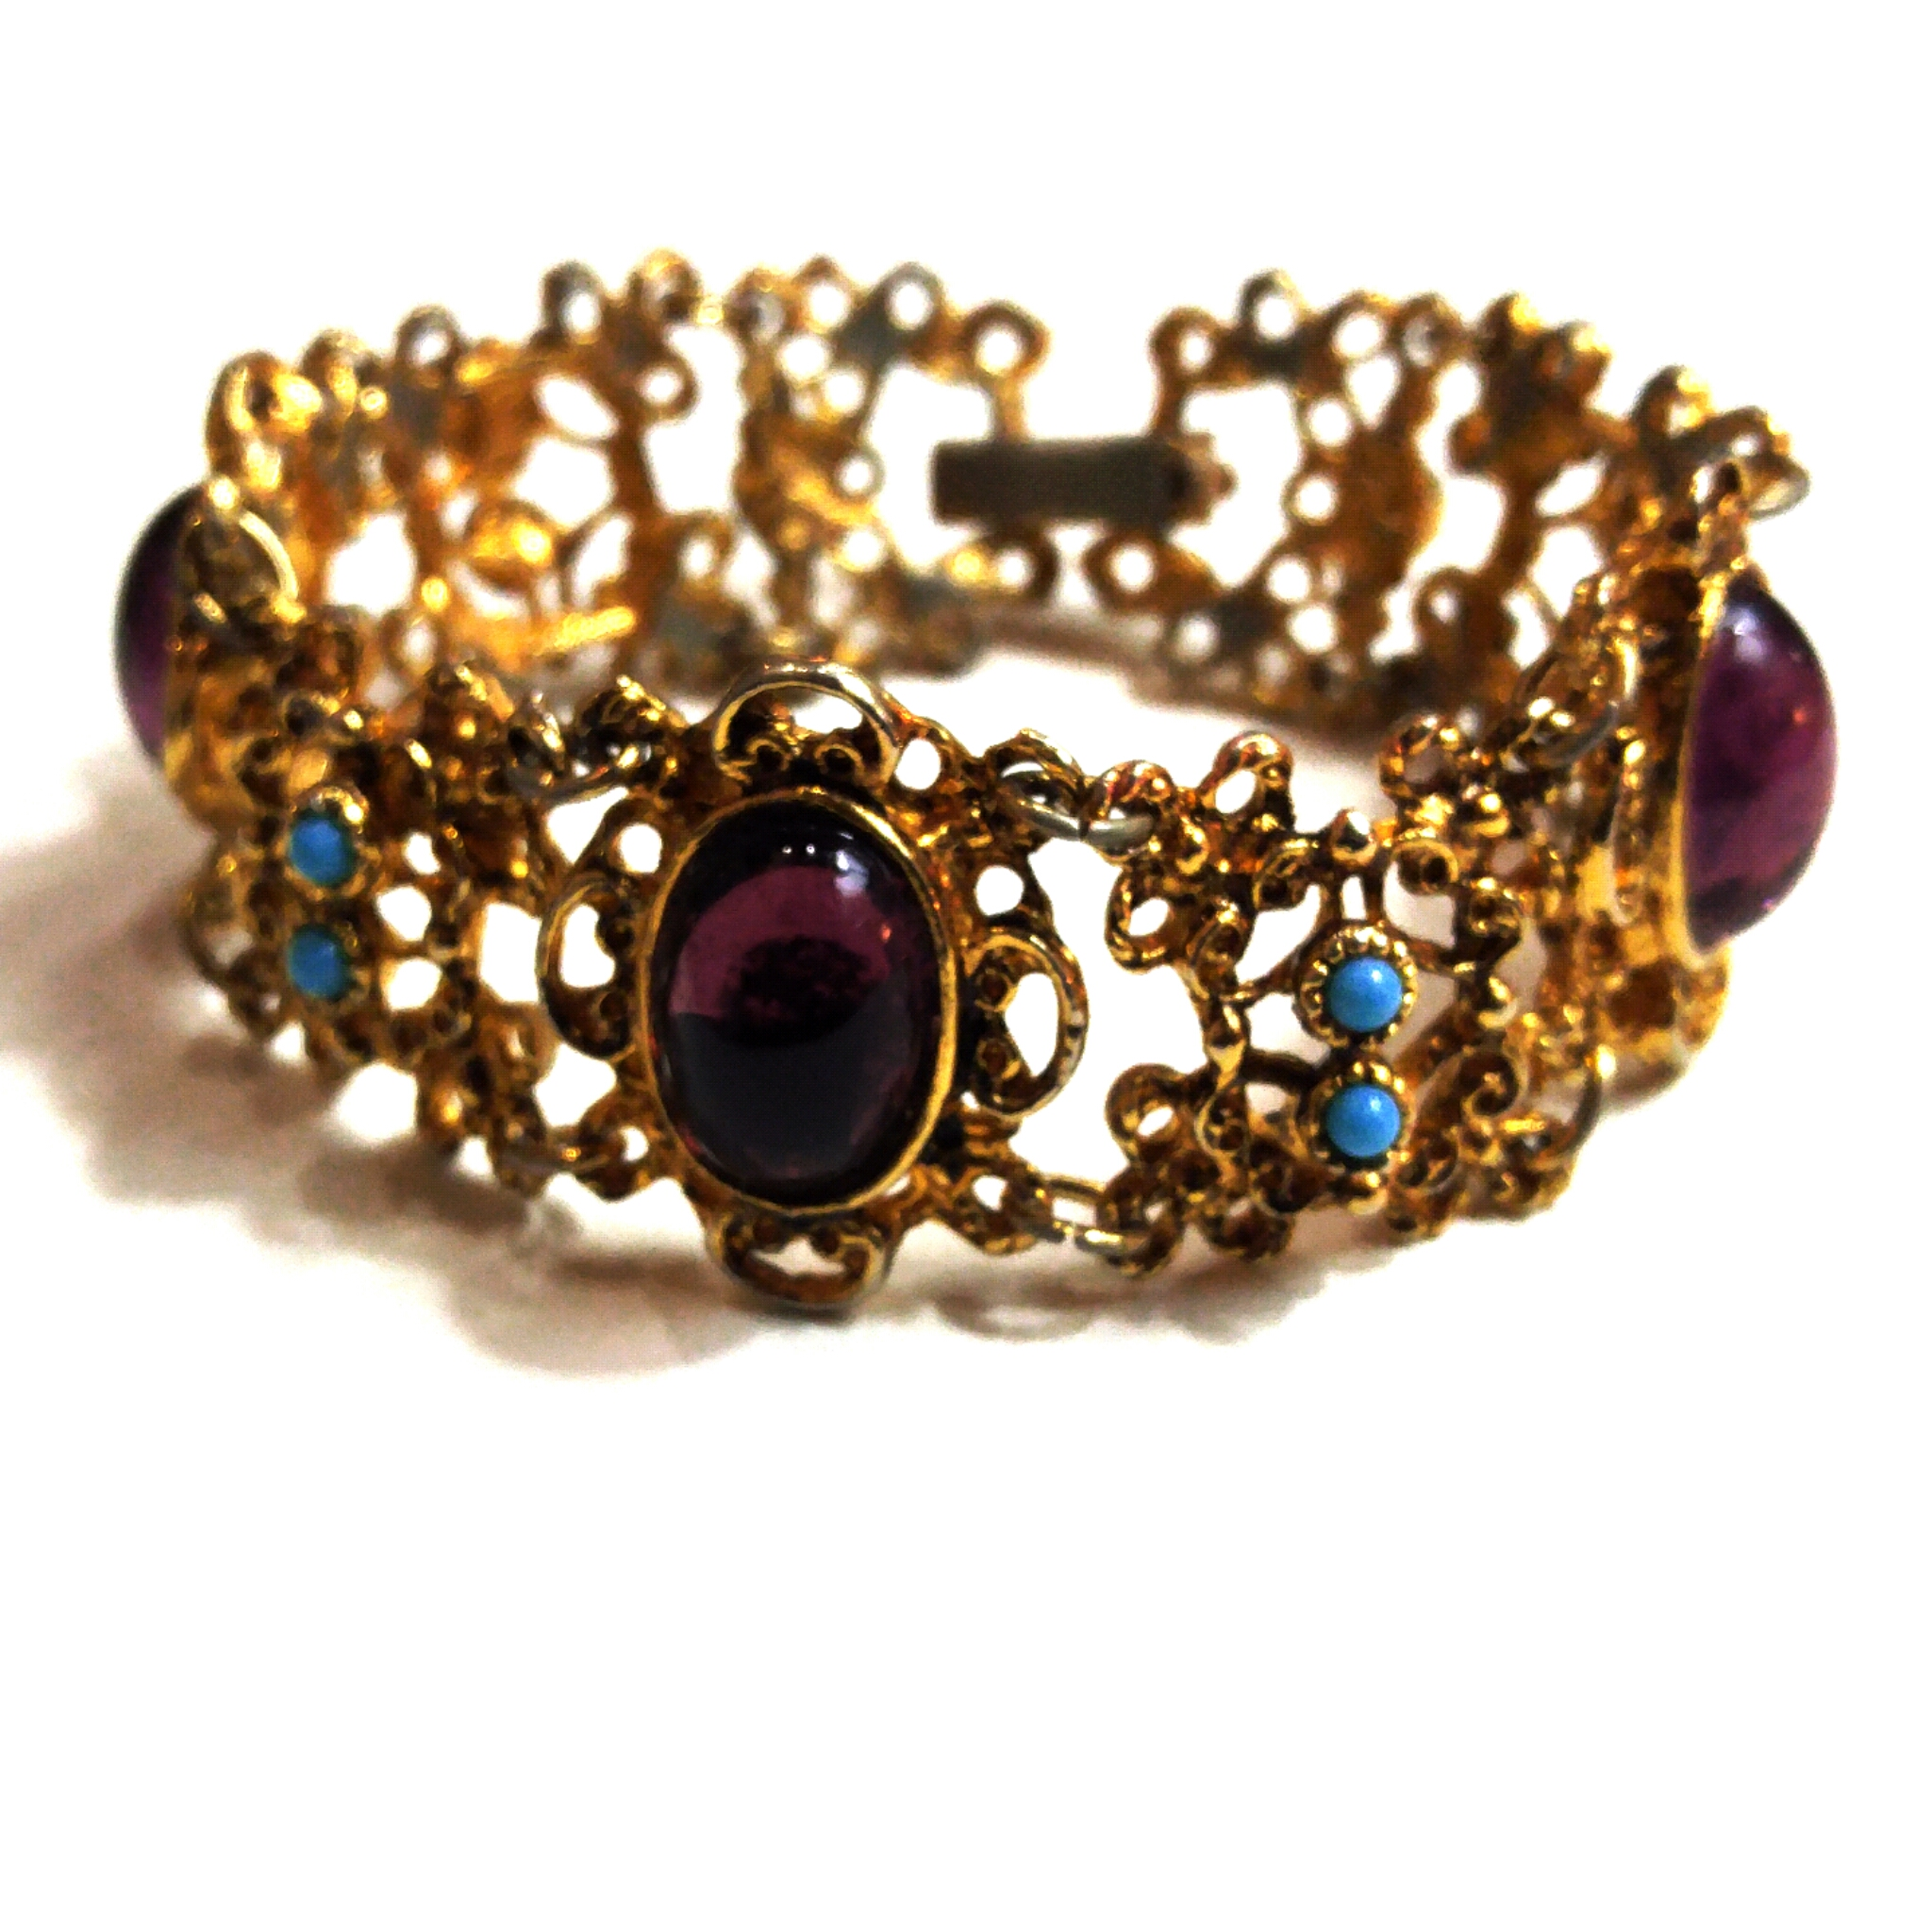 Gorgeous filigree vintage bracelet with glass stones and faux turquoise seed pearls